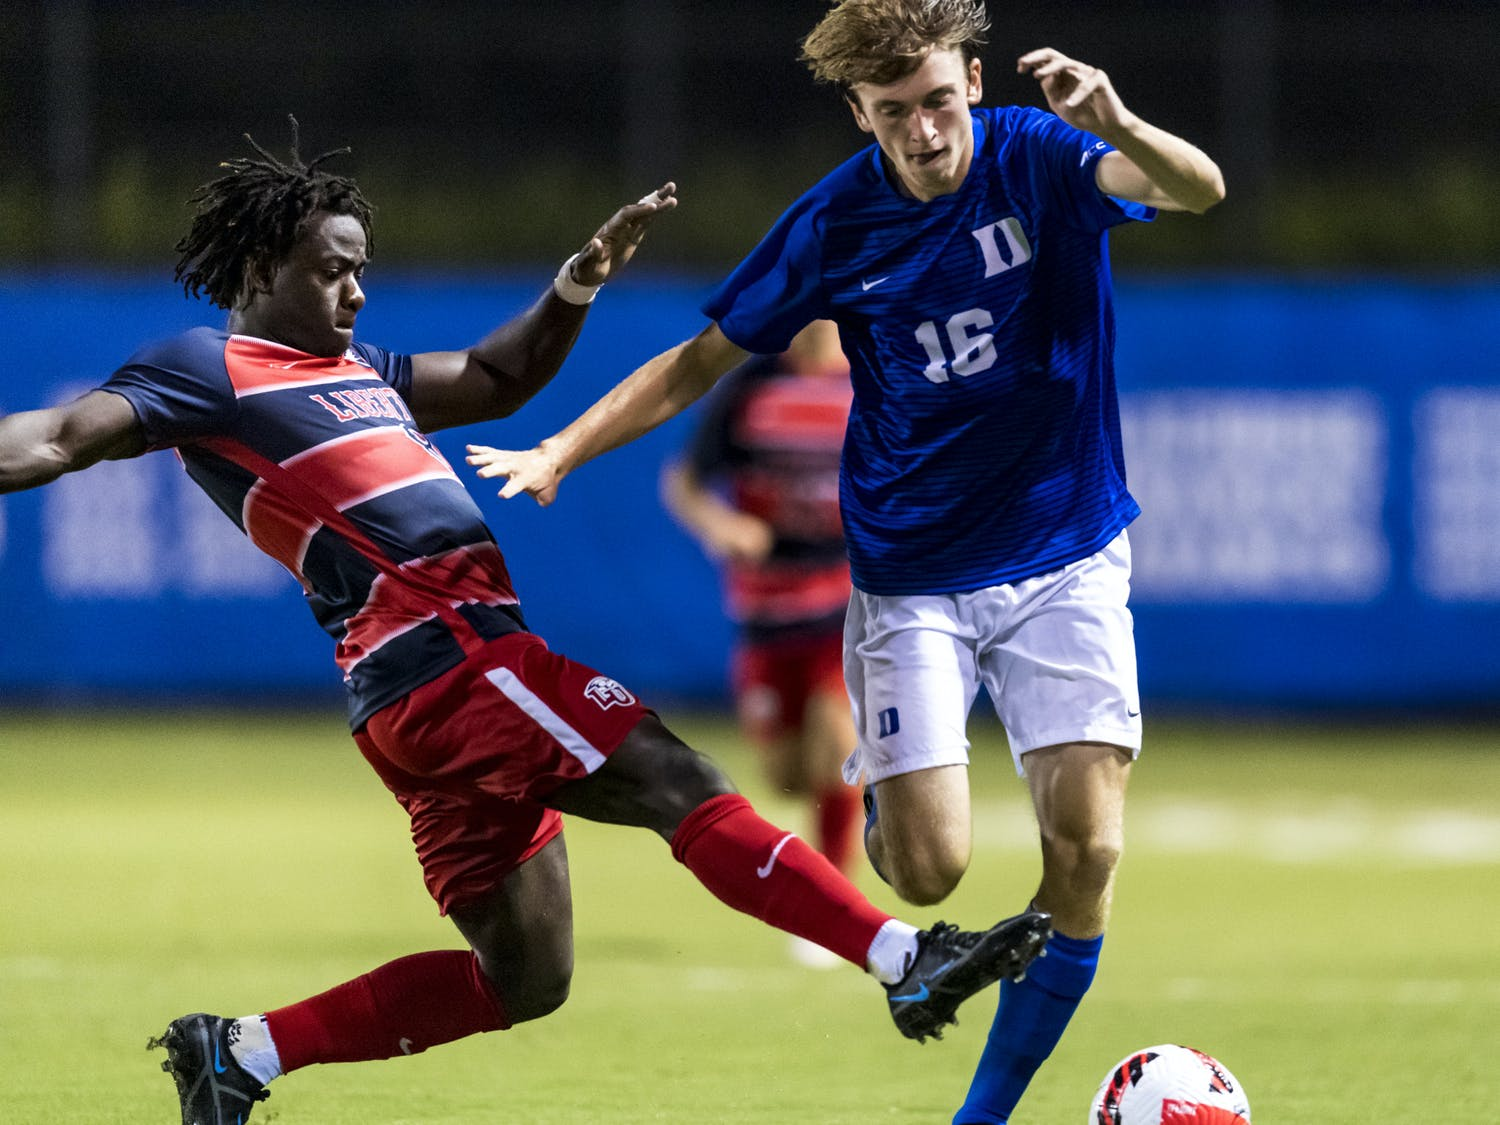 Walk-on Luke Thomas scored a goal and had an assist against Liberty.